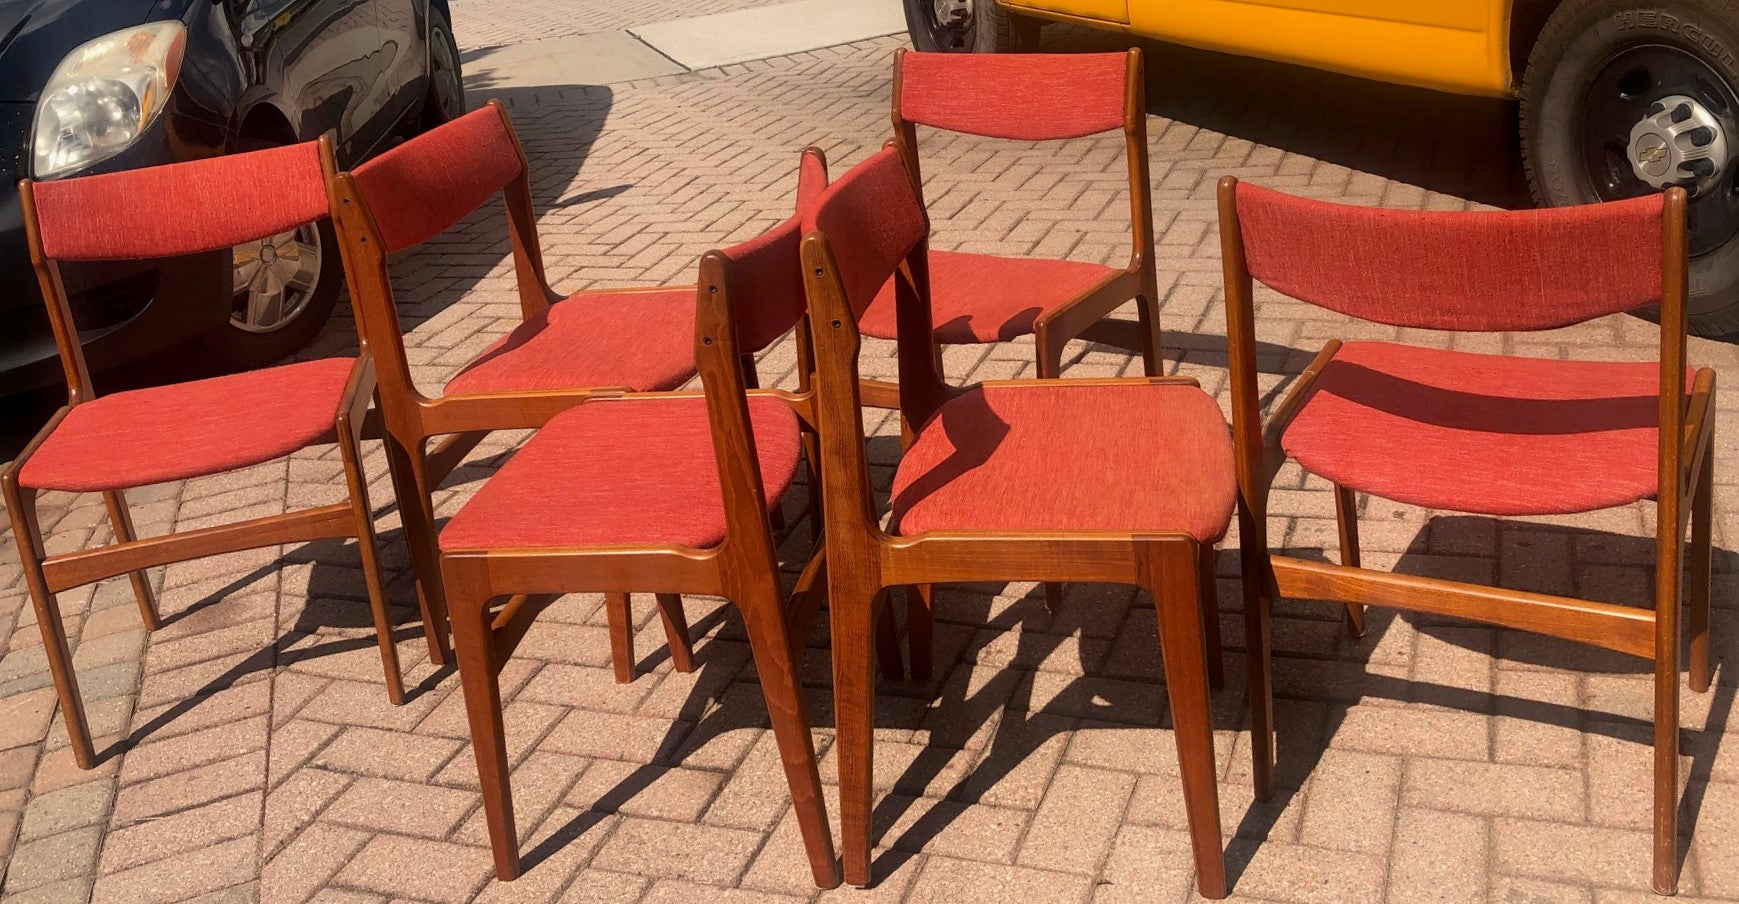 Tremendous Deposit For 10 Danish Mcm Teak Chairs By Anderstrup Restored Will Be Reupholstered For You Each 229 Andrewgaddart Wooden Chair Designs For Living Room Andrewgaddartcom